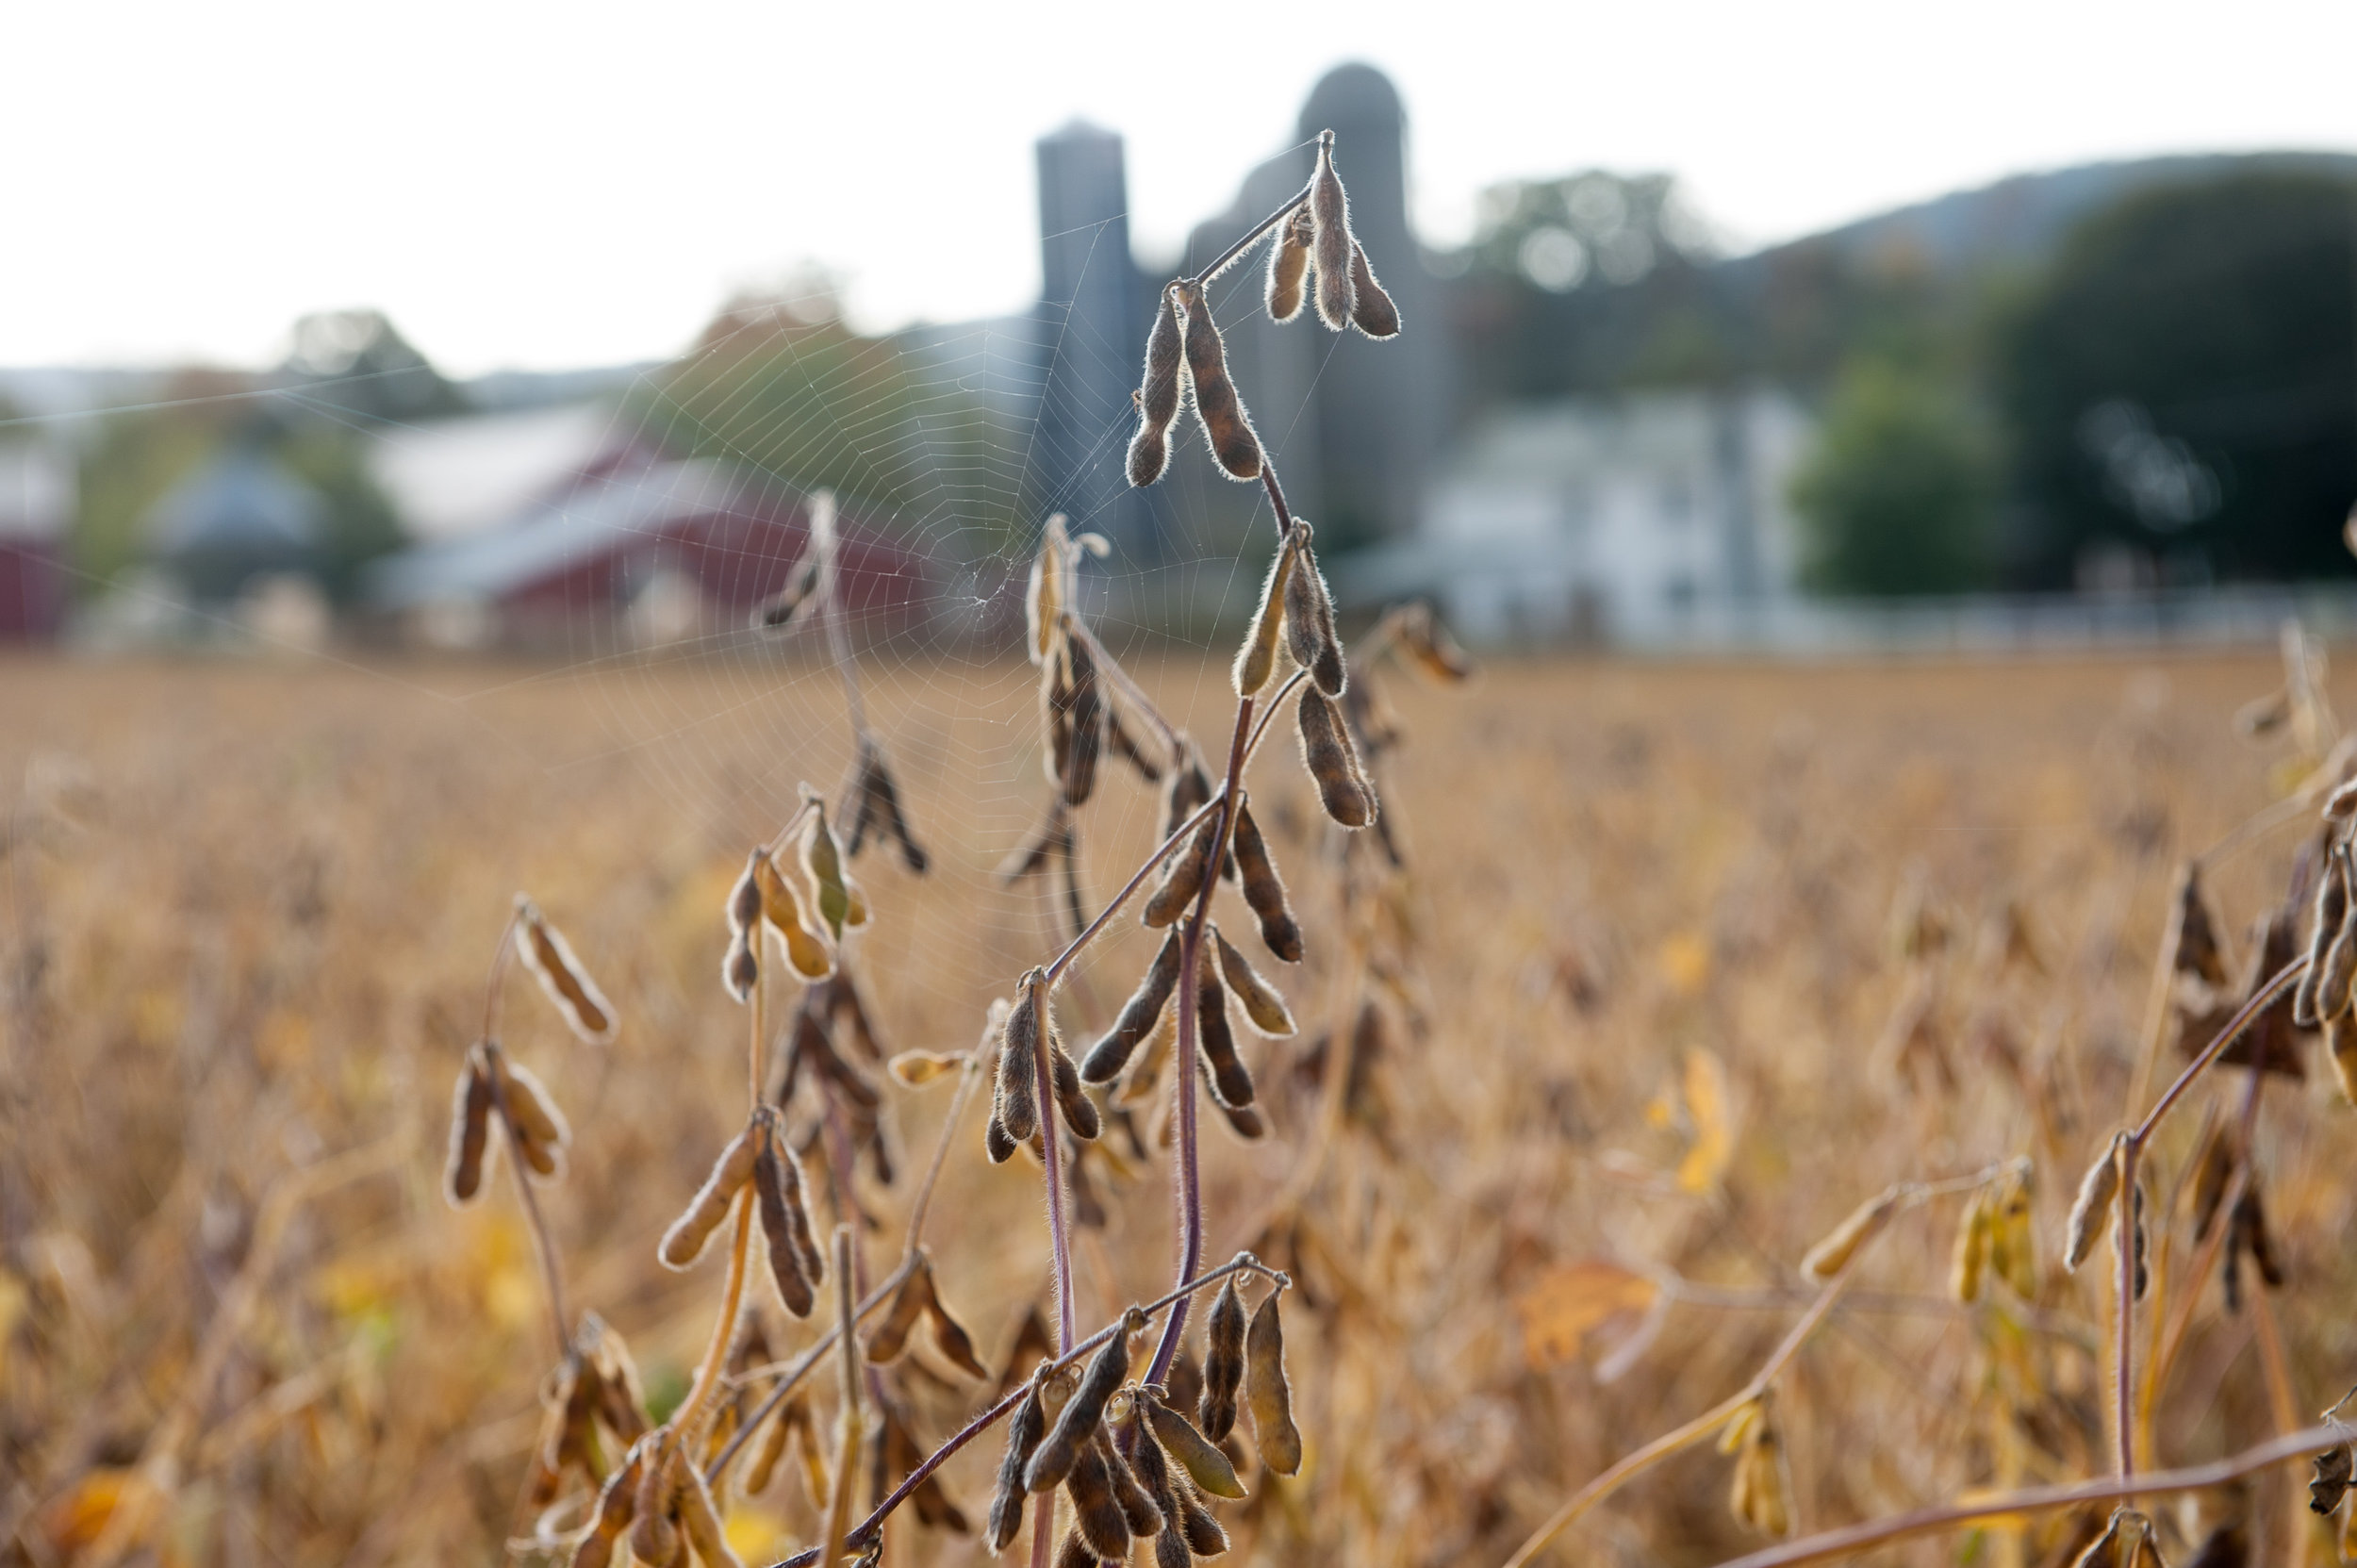 Image of soybean plant in field.  Image by Edwin Remsberg